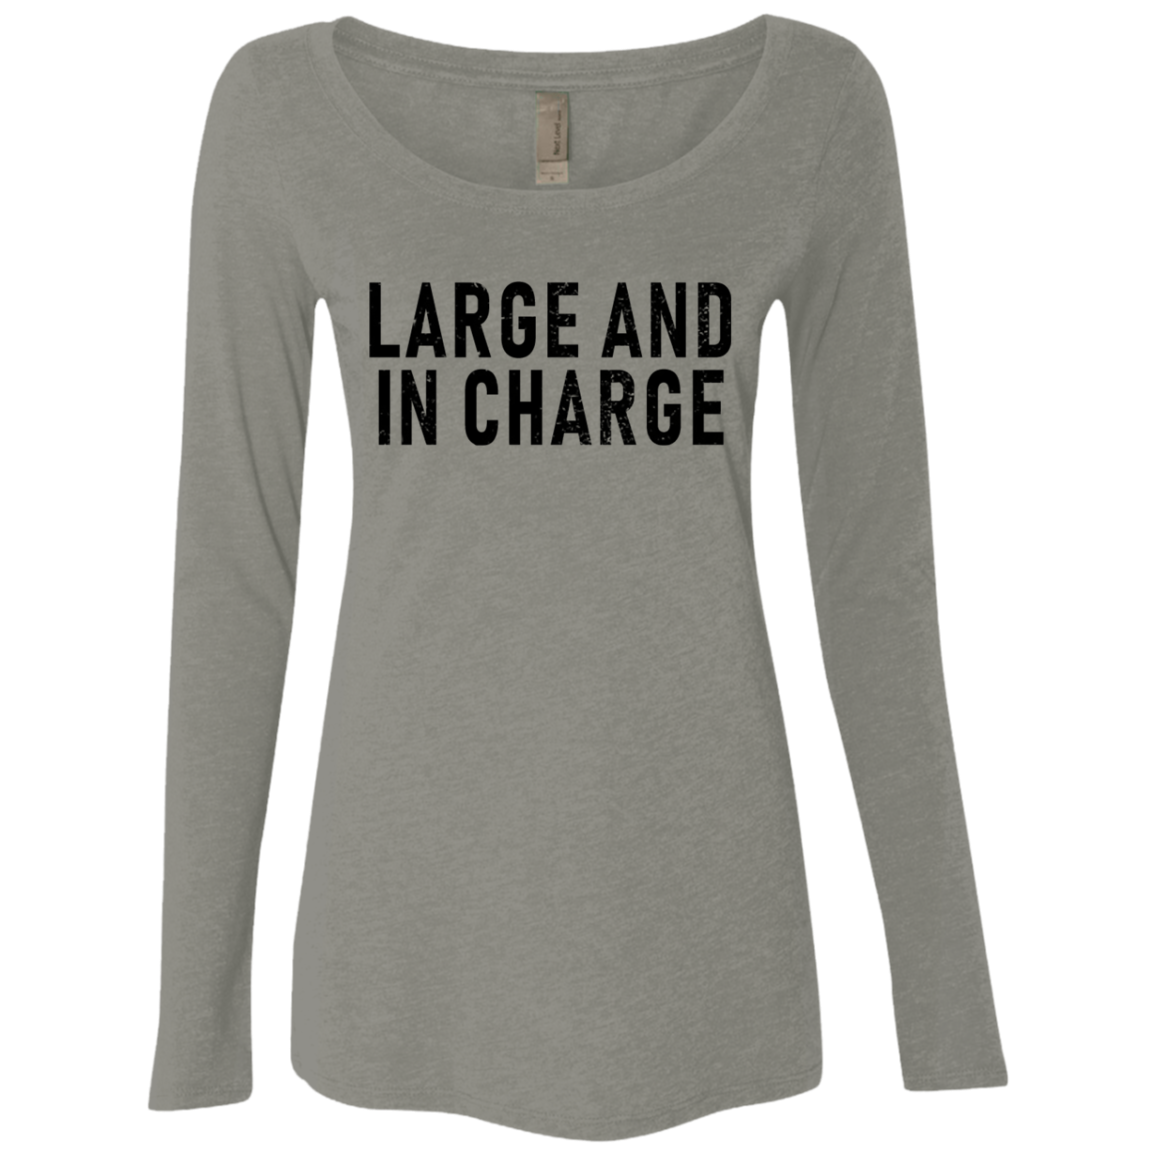 Large and in Charge Women's Long Sleeve Tee